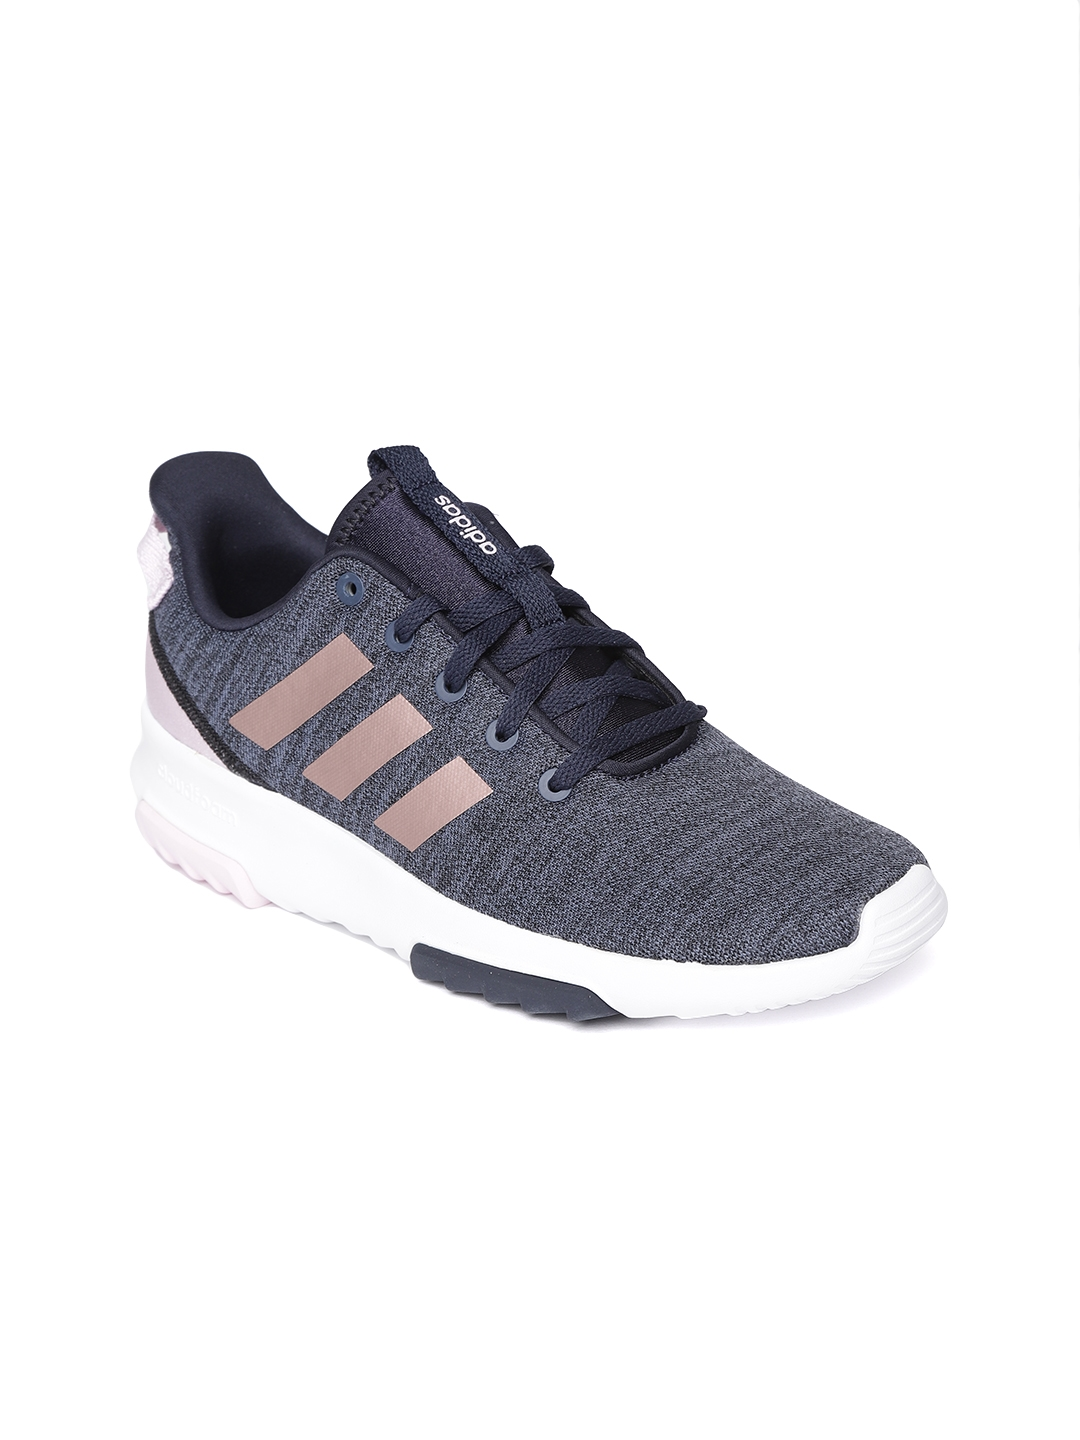 ee05e91e17c Buy ADIDAS Kids Navy CF Racer TR Running Shoes - Sports Shoes for ...